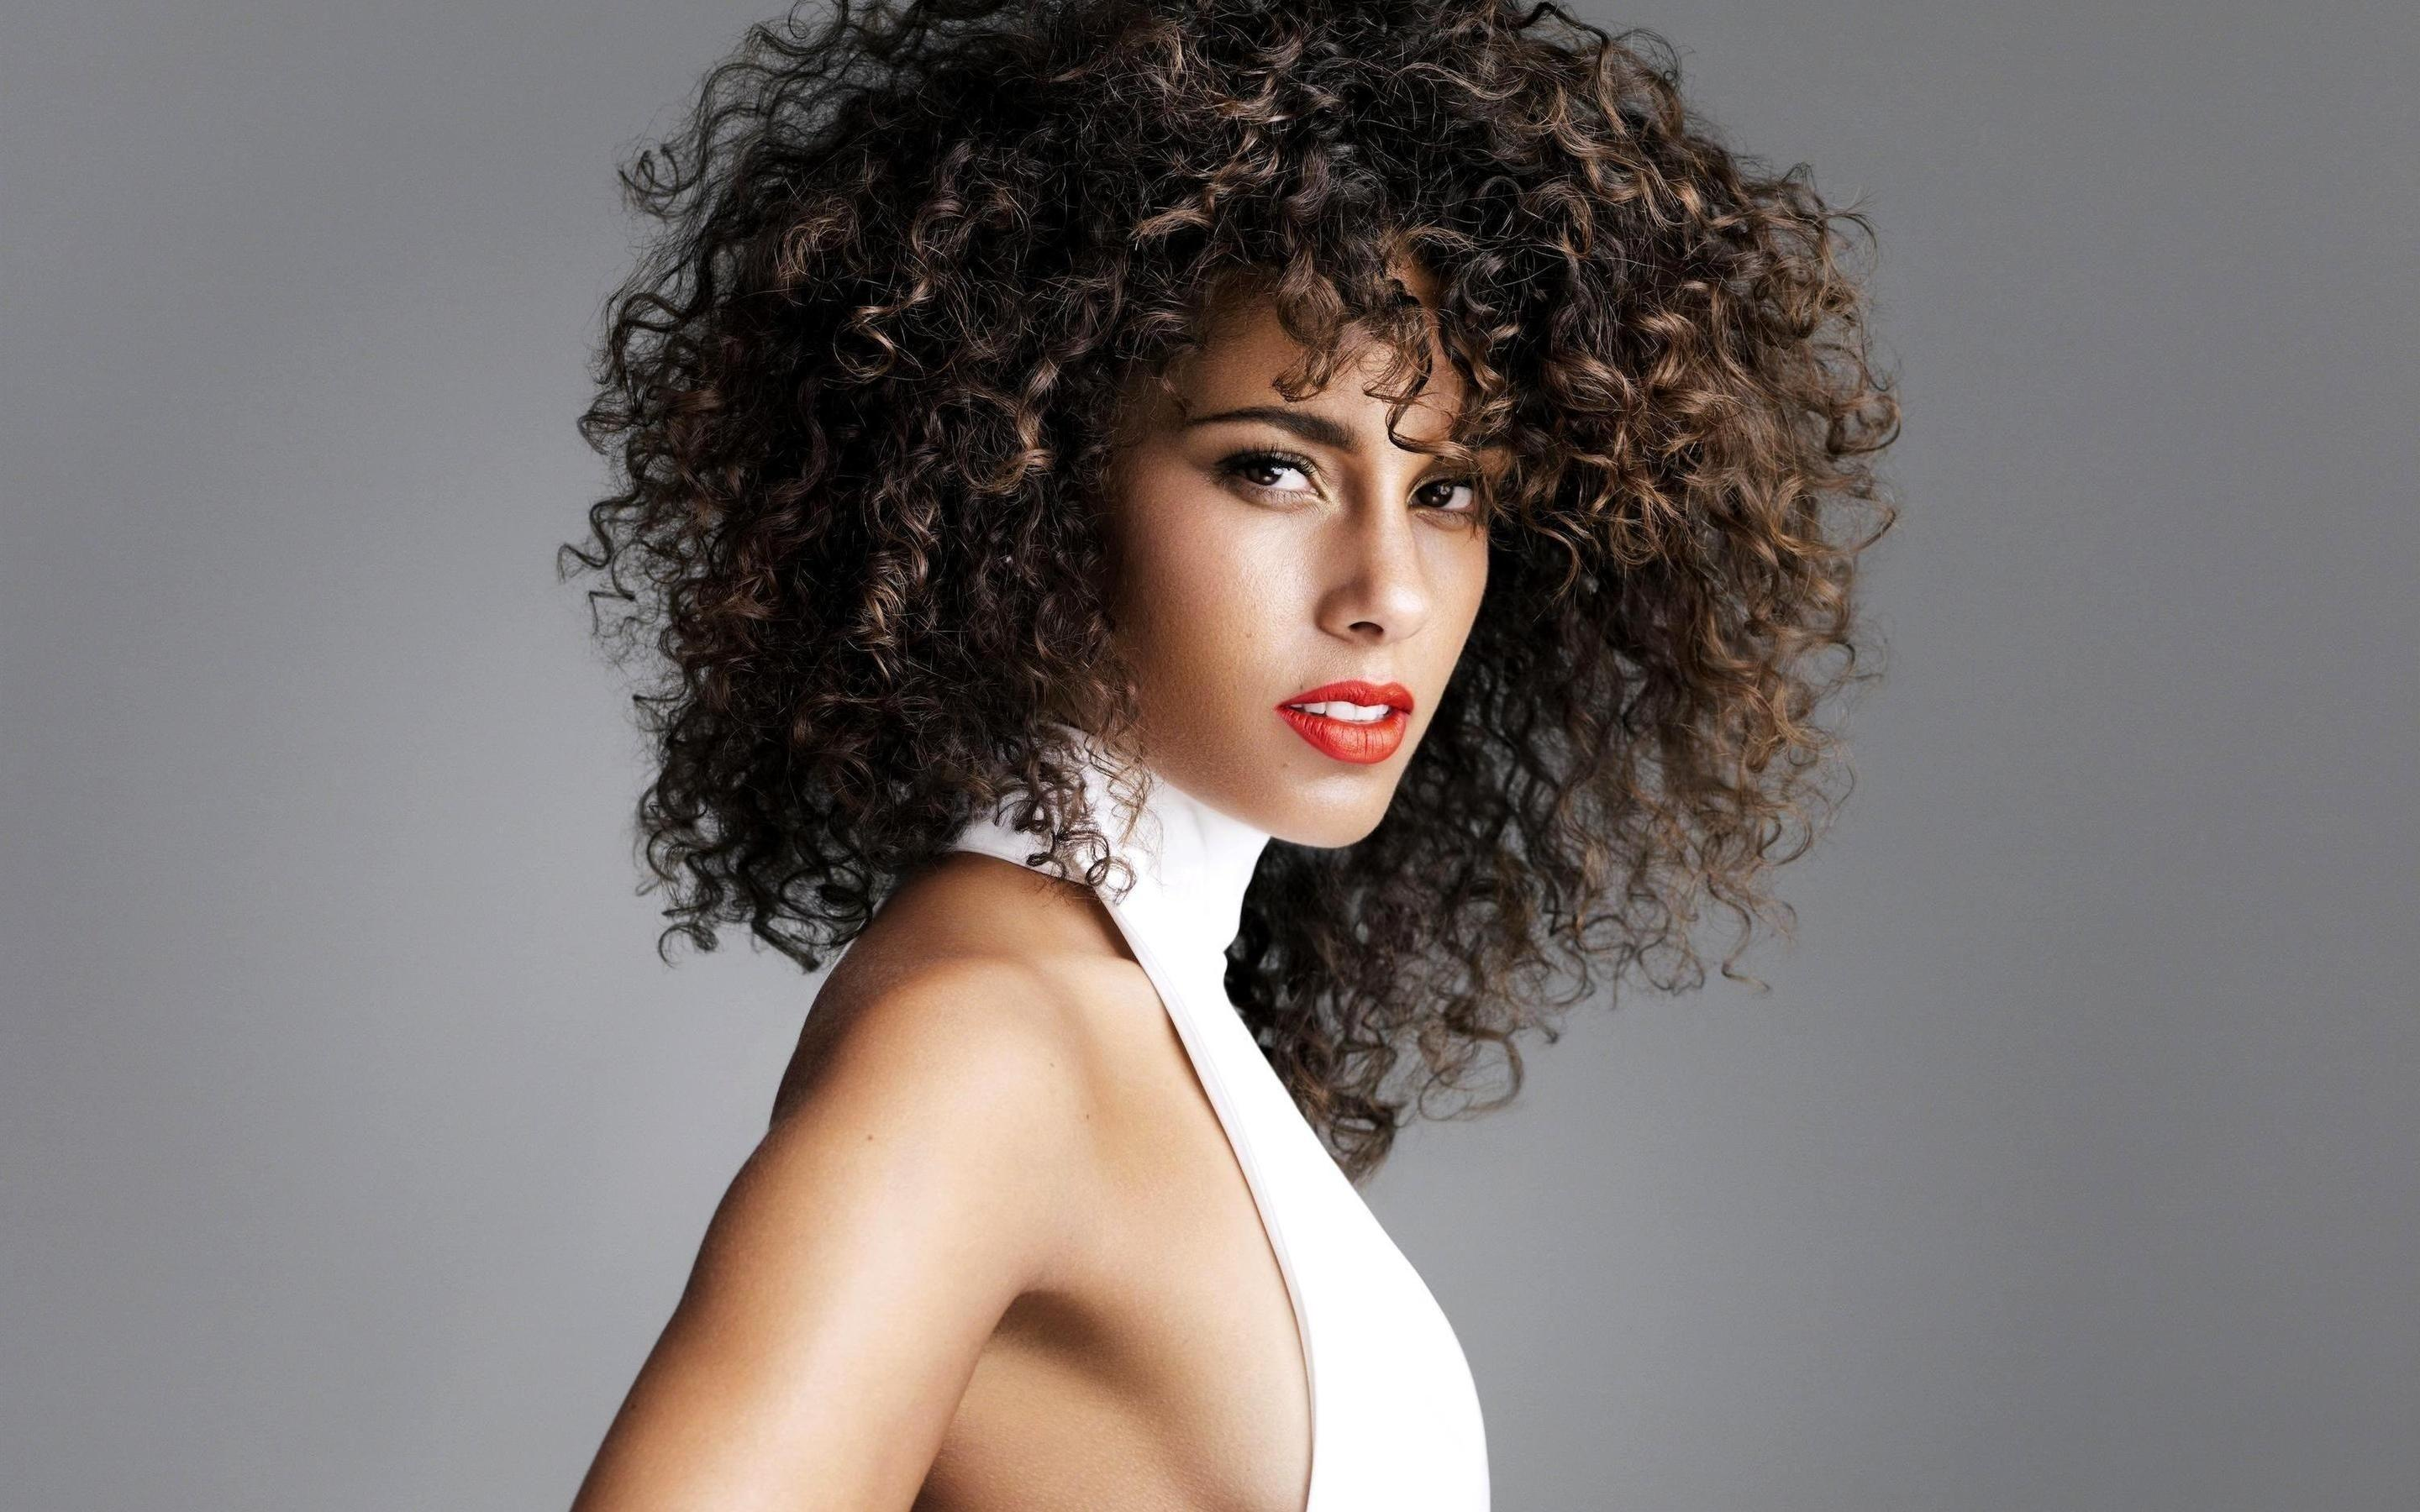 Alicia Keys Curly Hair Crown Life Magazine